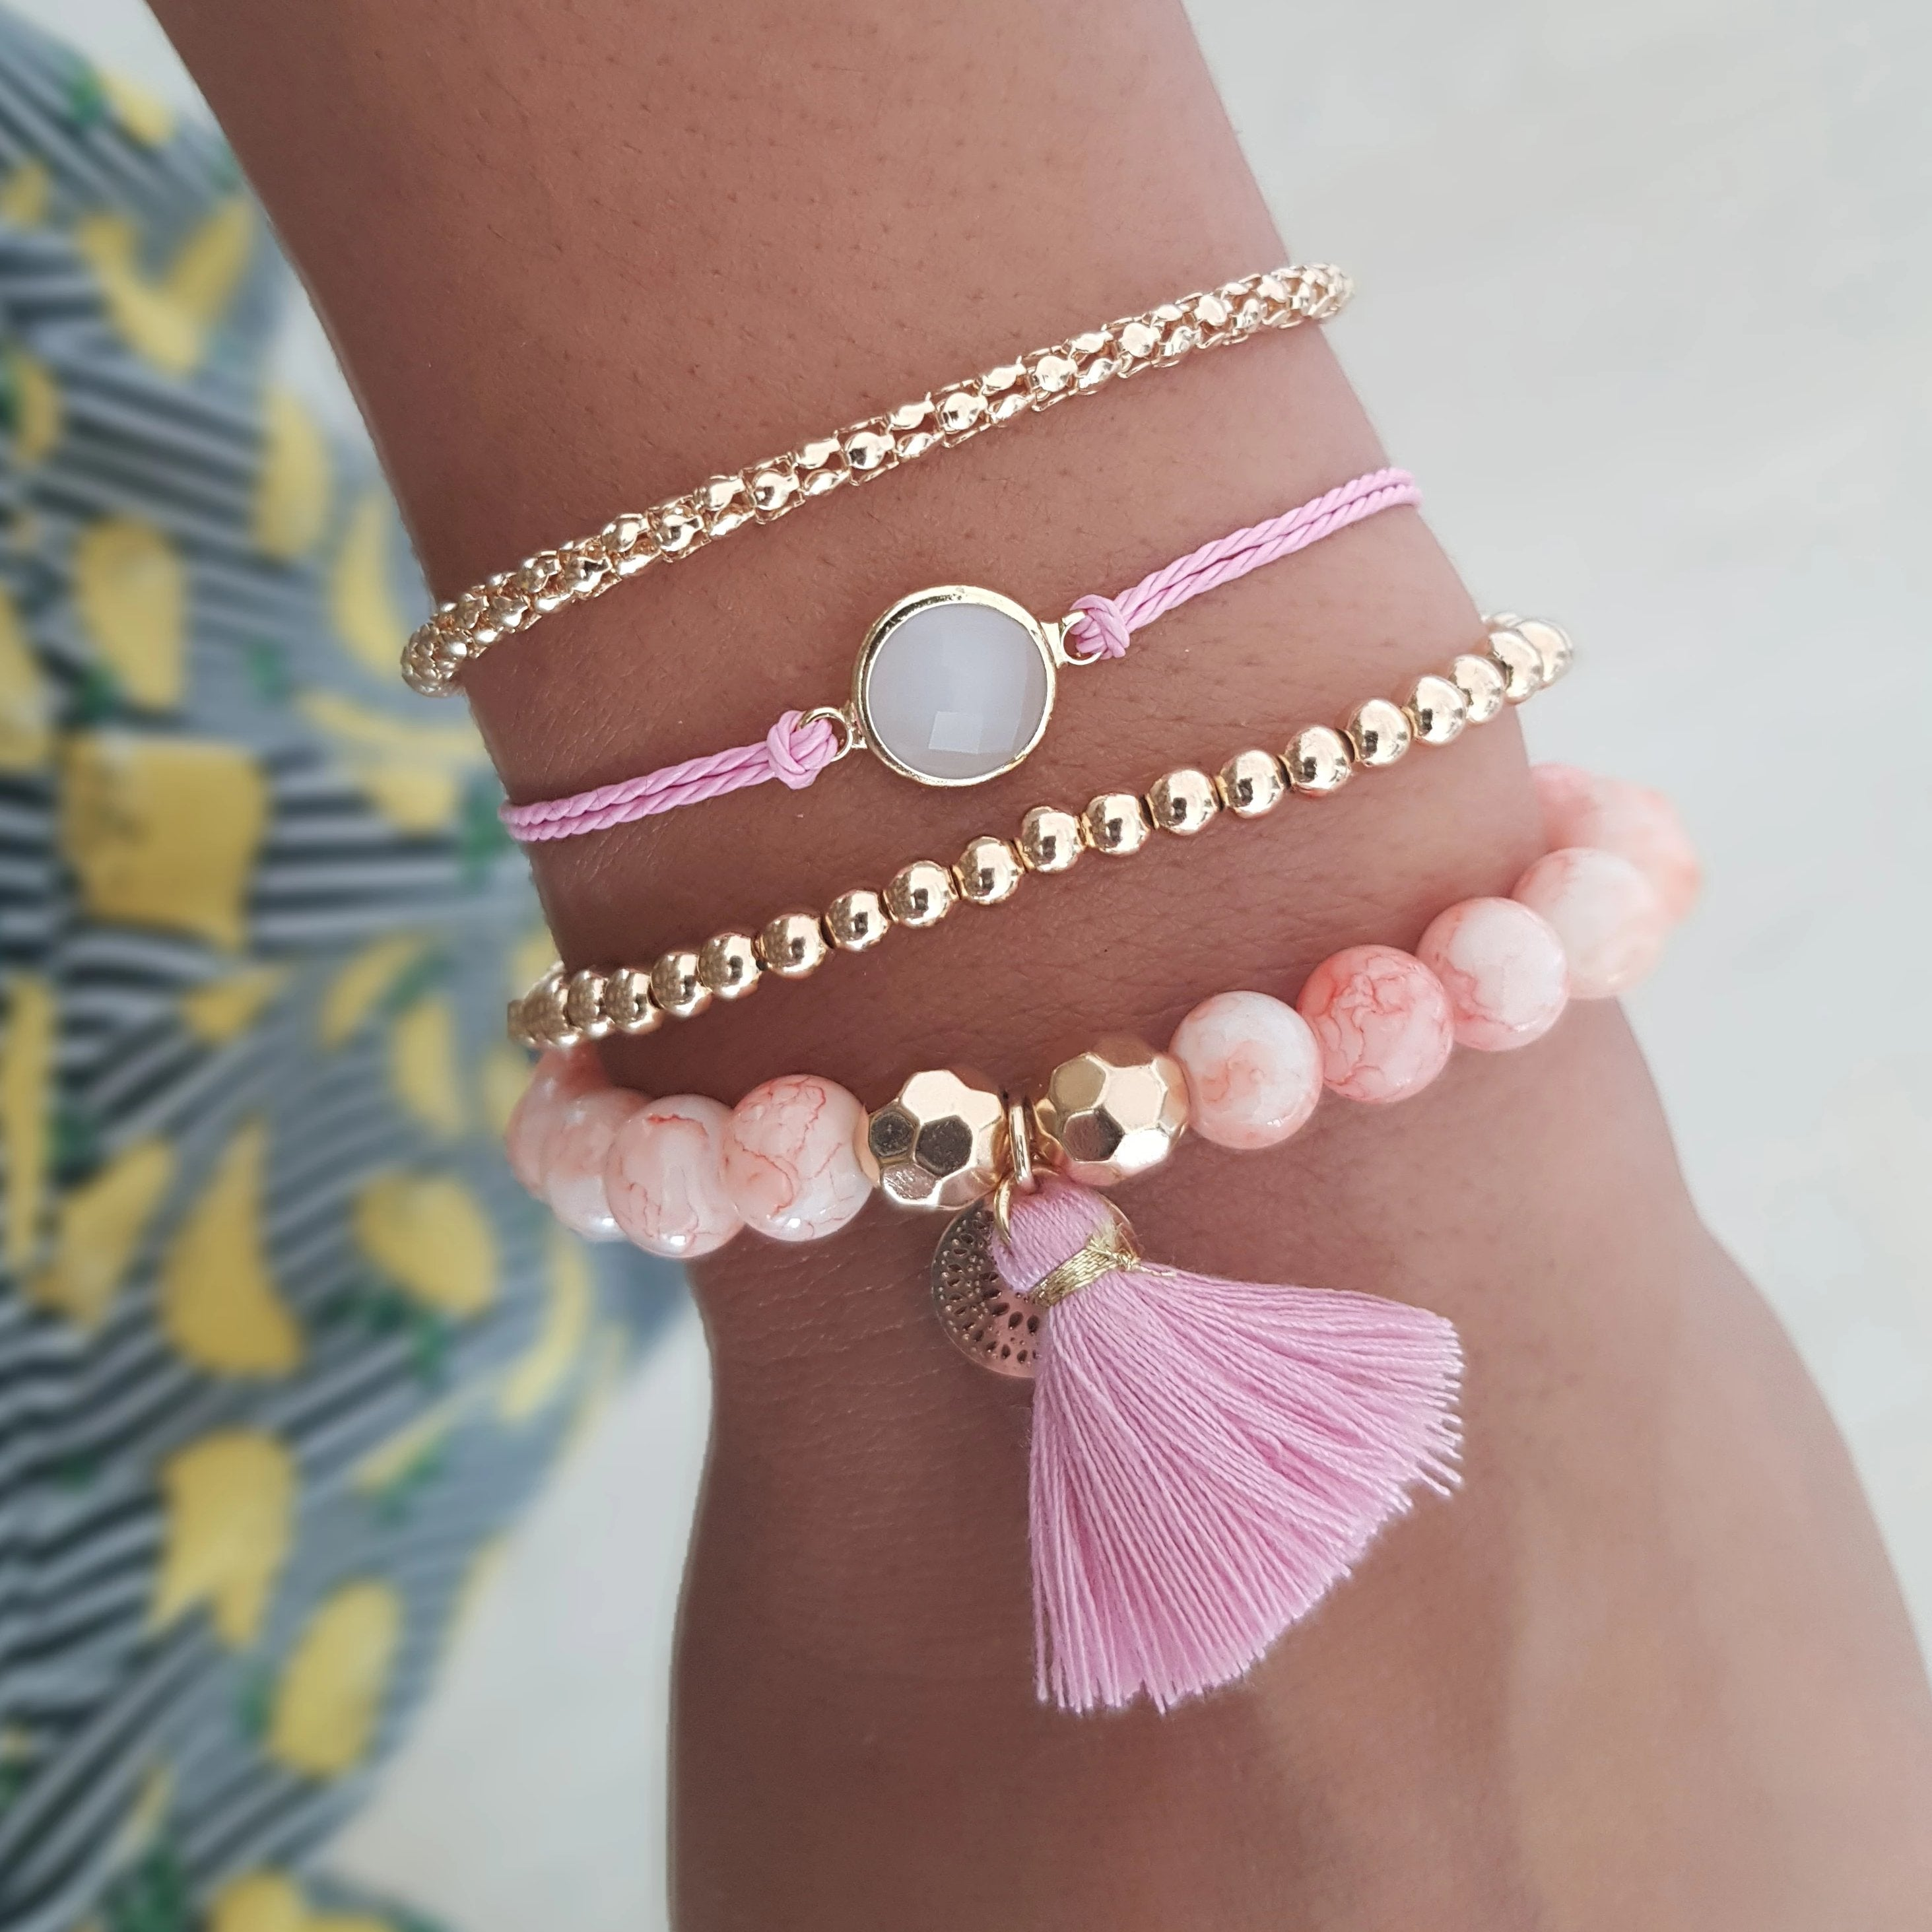 Cancer Research | Boho